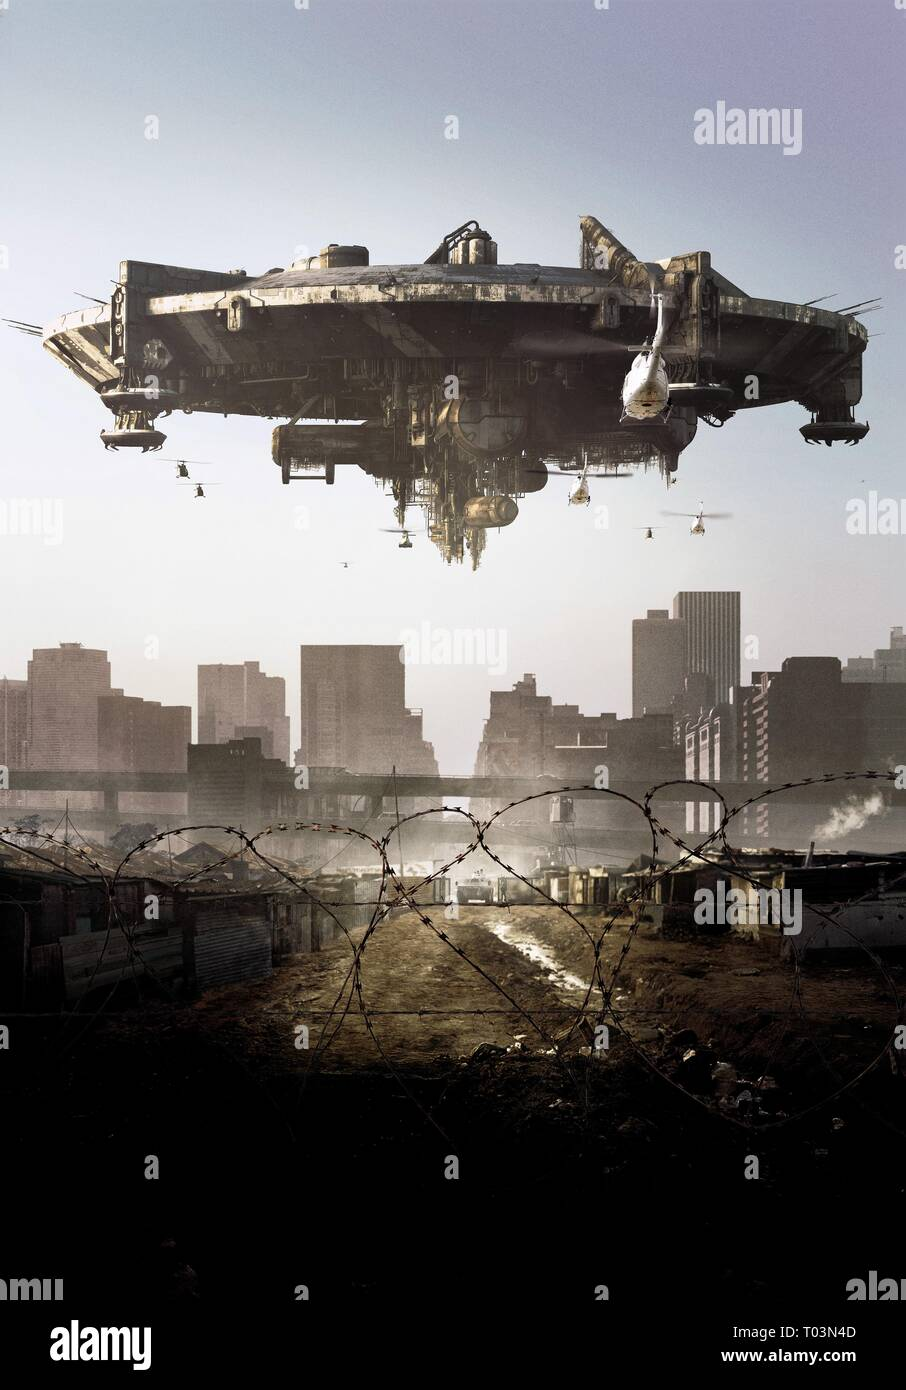 SPACECRAFT OVER ALIEN COMPOUND, DISTRICT 9, 2009 - Stock Image